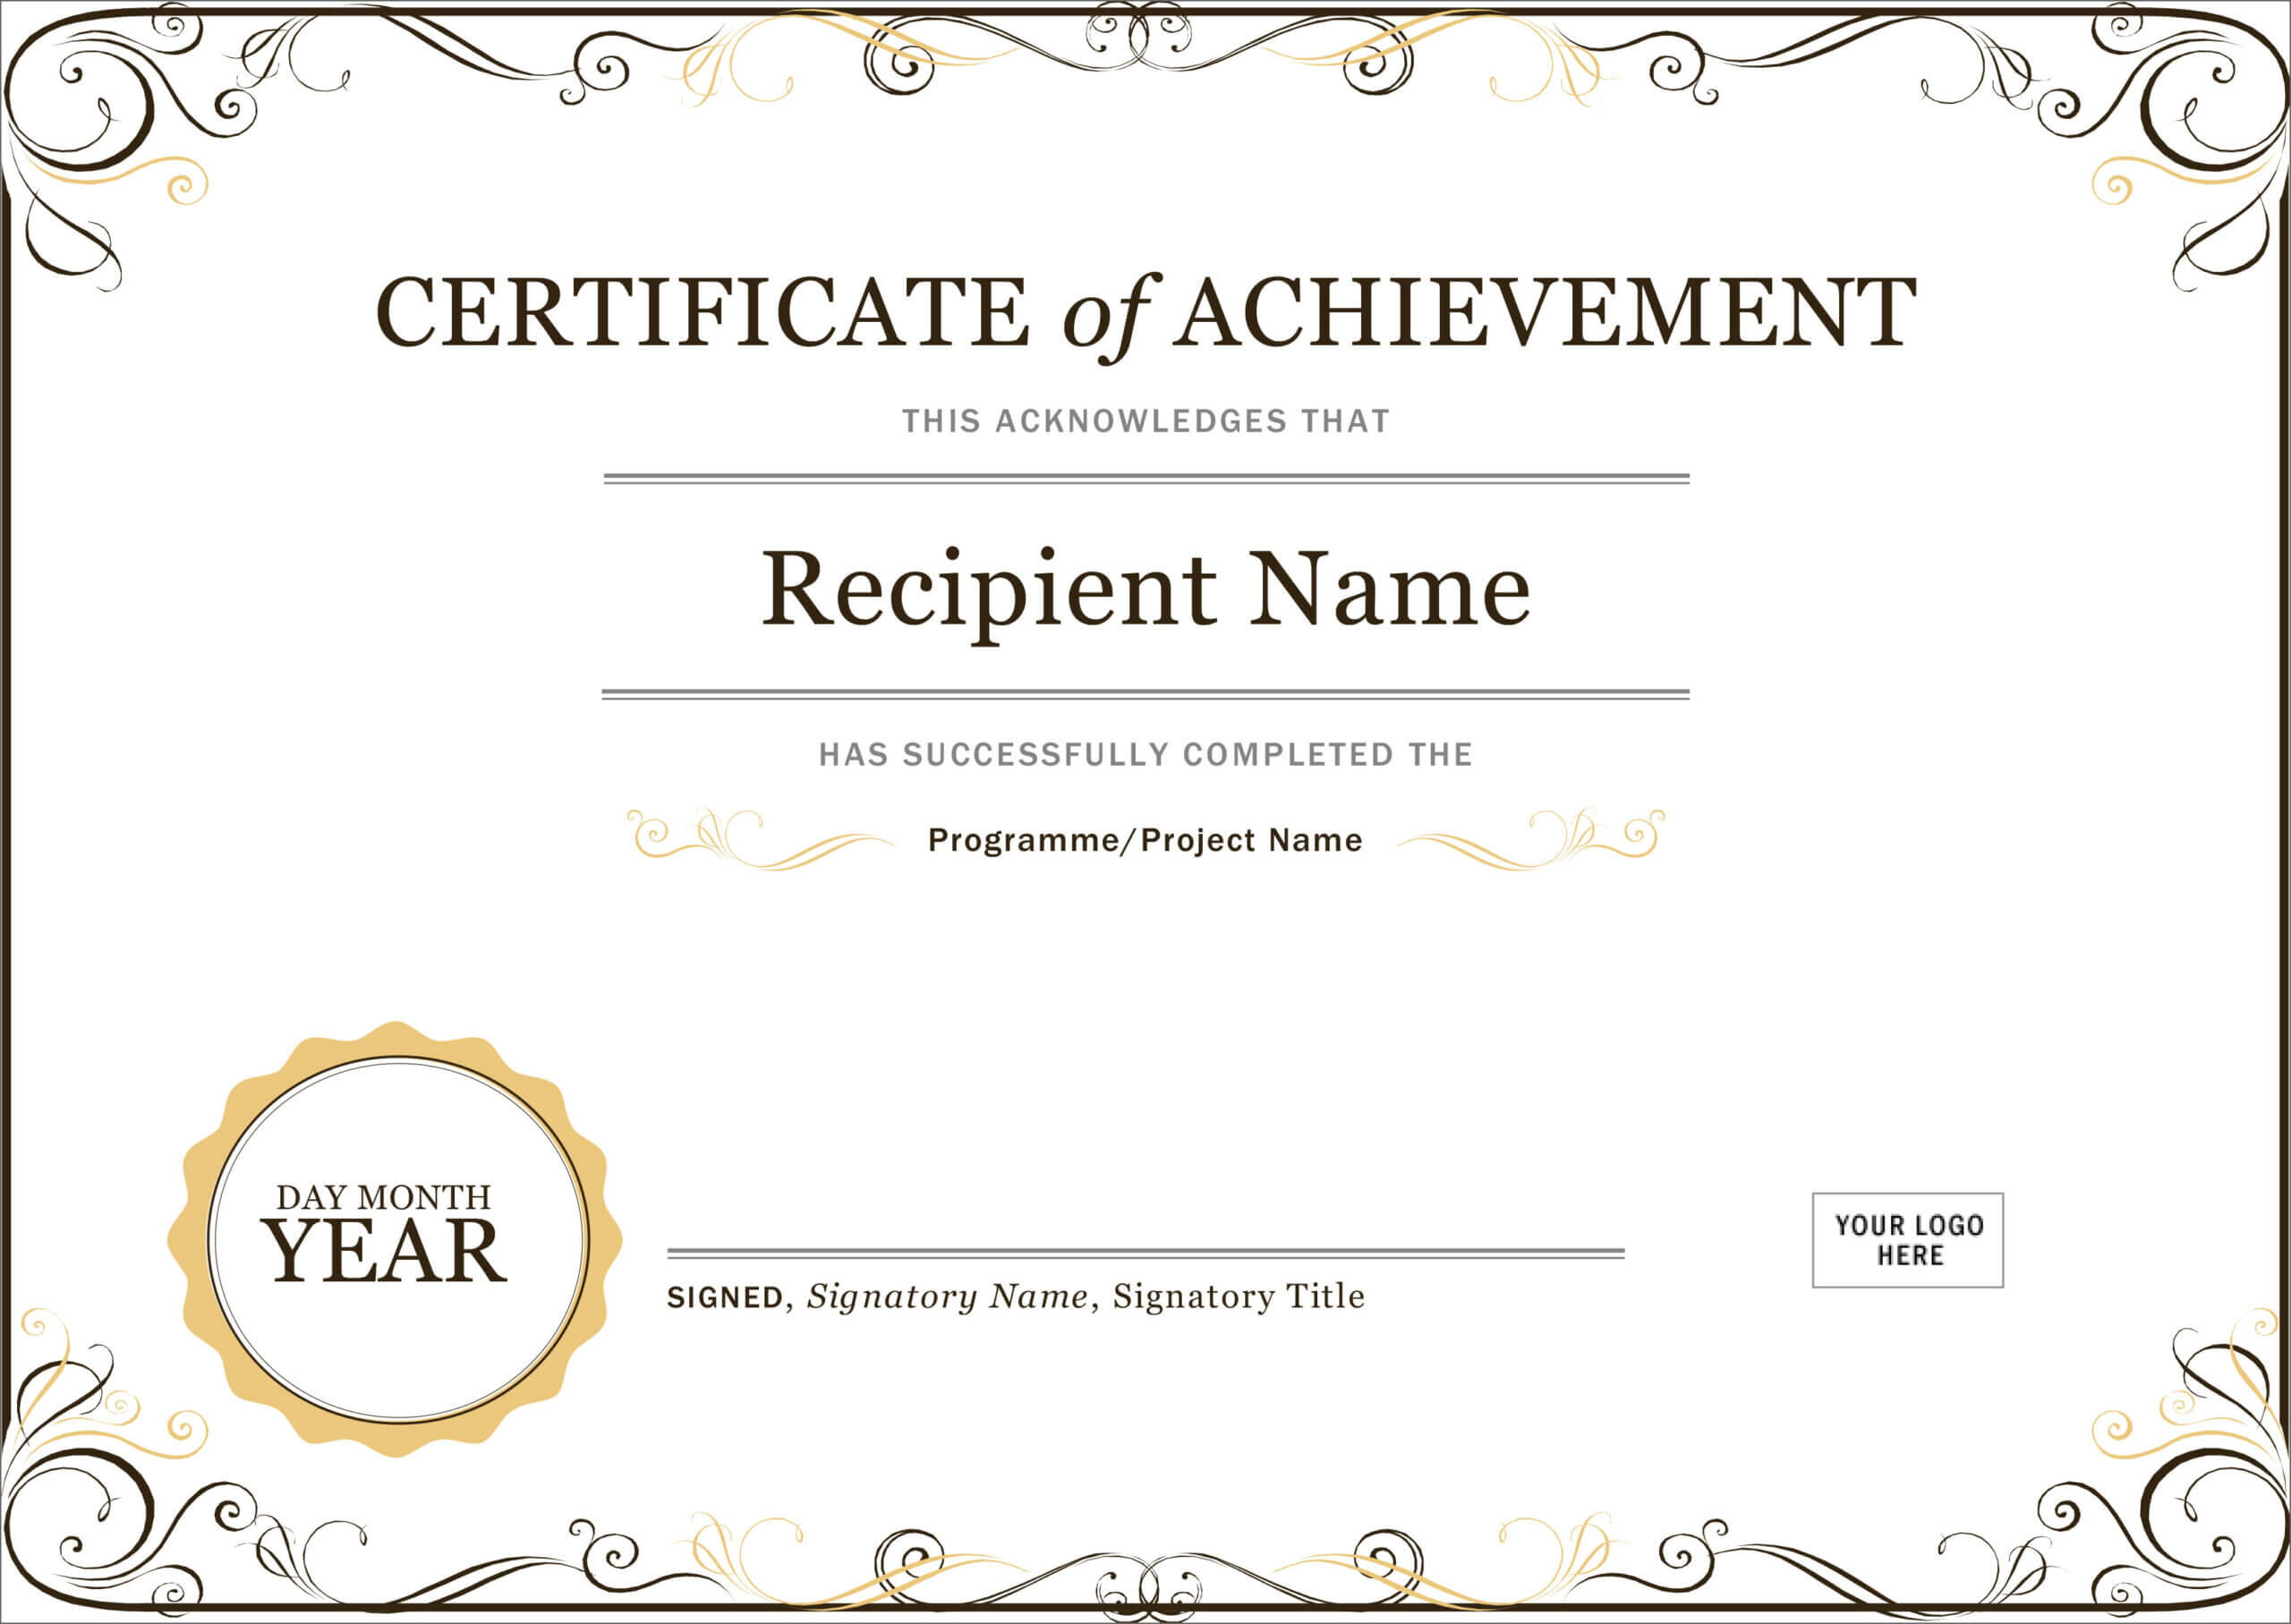 50 Free Creative Blank Certificate Templates In Psd With Microsoft Word Certificate Templates